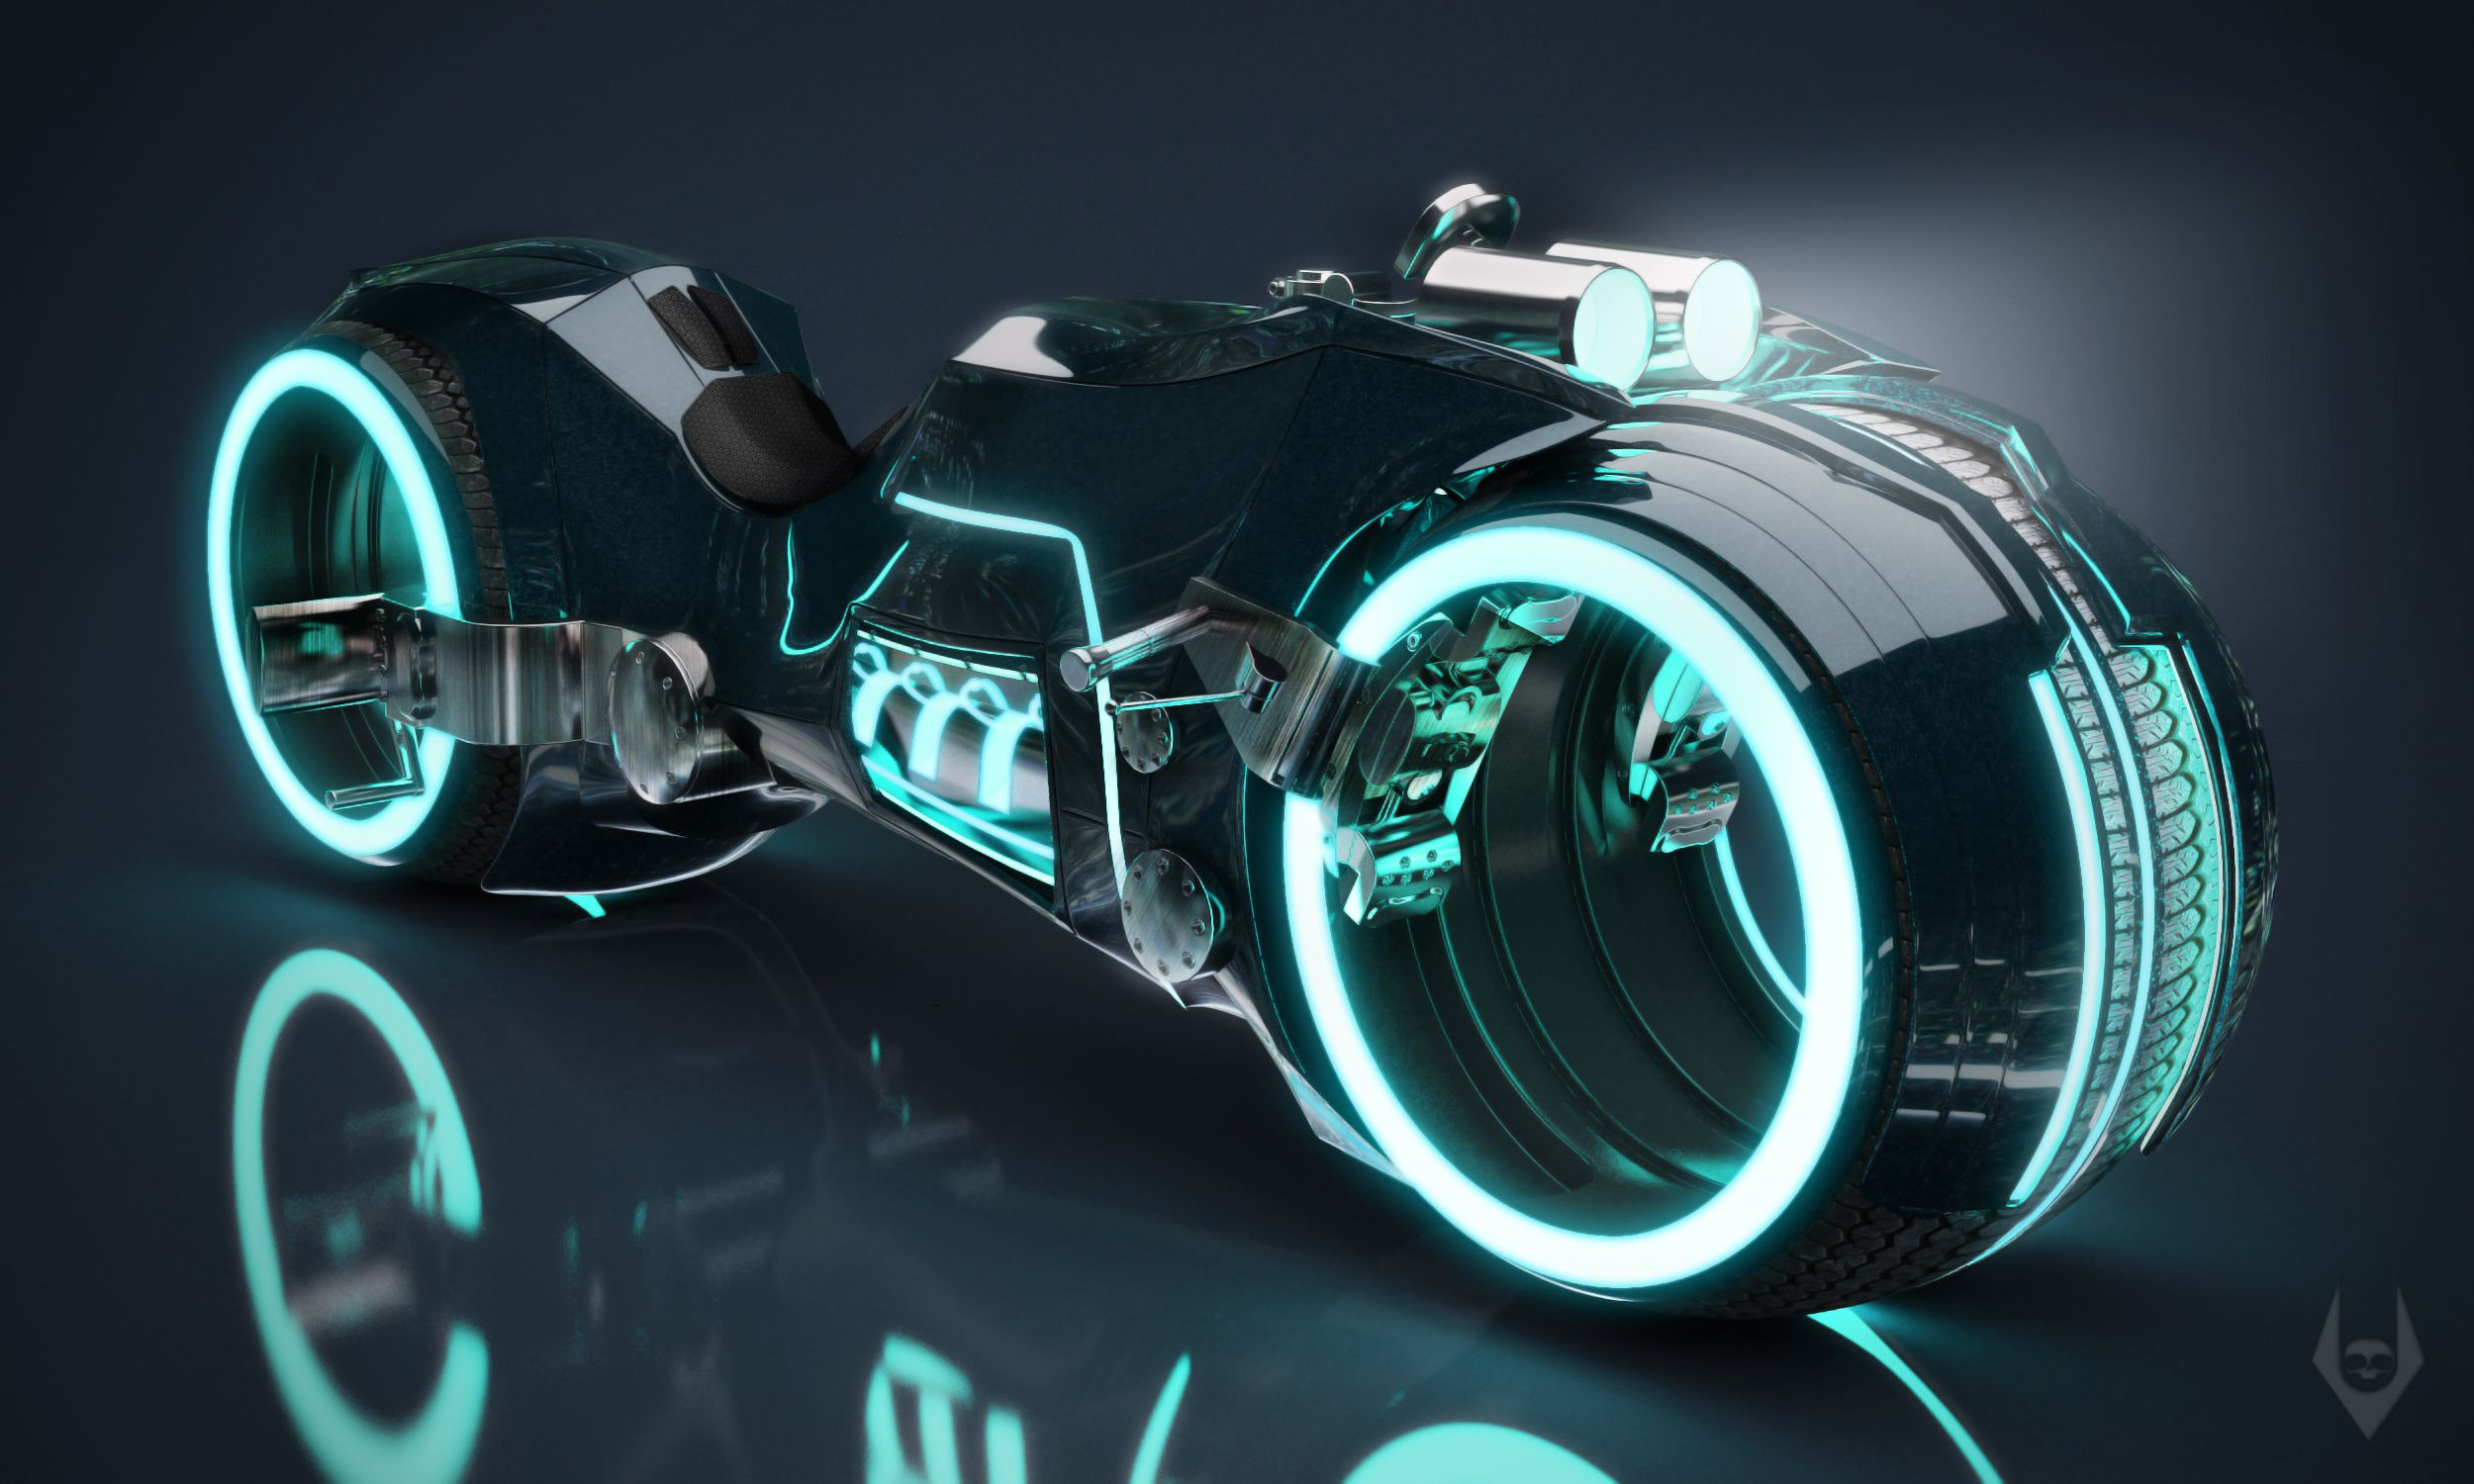 Tron Legacy HD Wallpapers | Wallpapers, Backgrounds, Images, Art ...